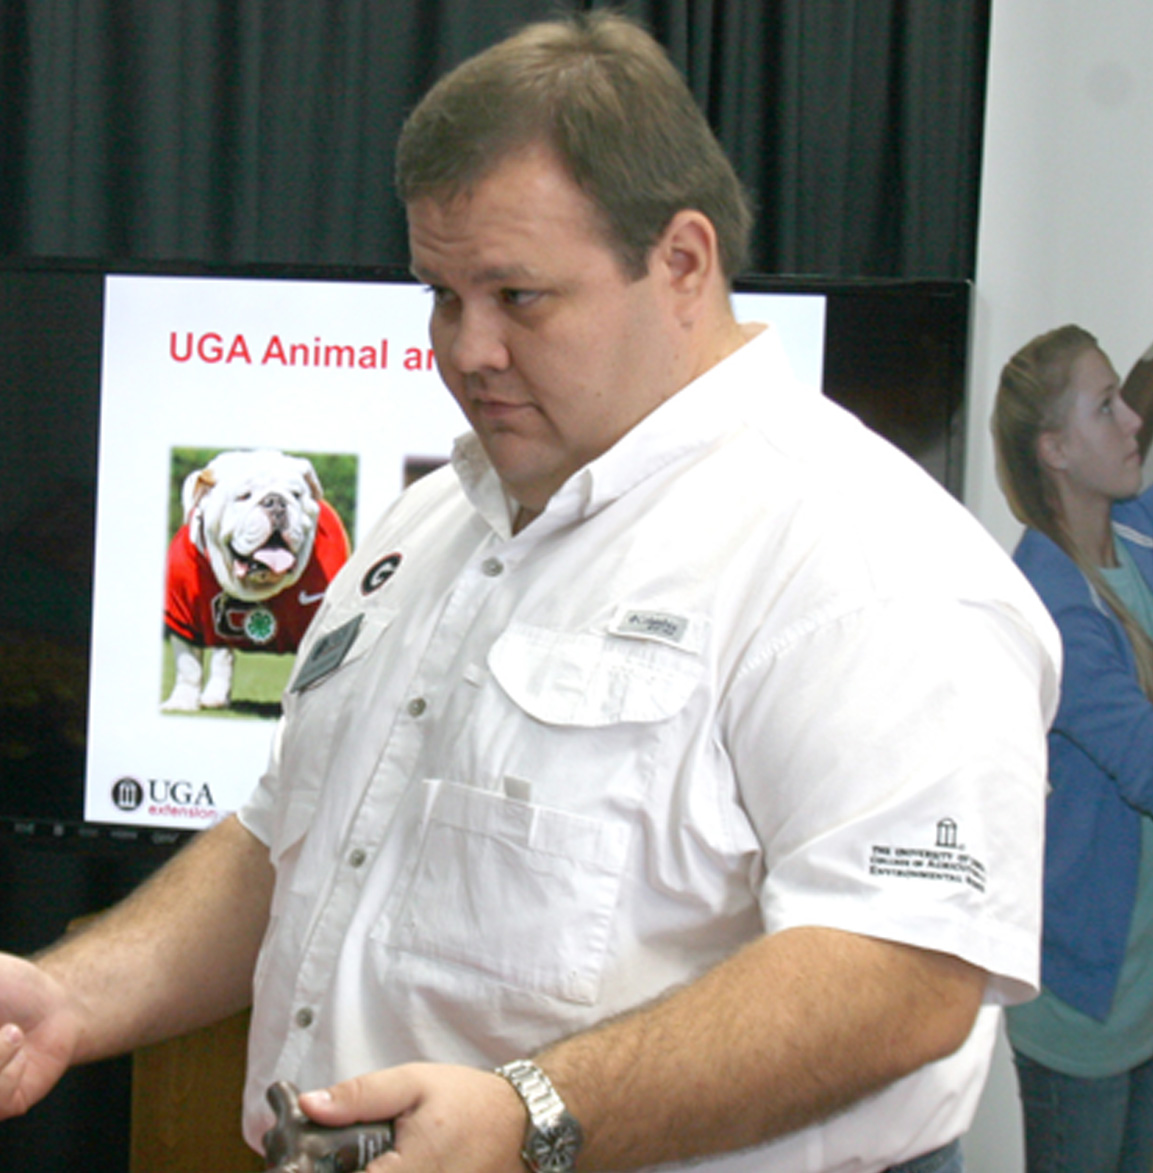 Jacob Segers, beef cattle specialist at the UGA Tifton Campus, works at the Sunbelt Expo in Moultrie on Wednesday, Oct. 15.